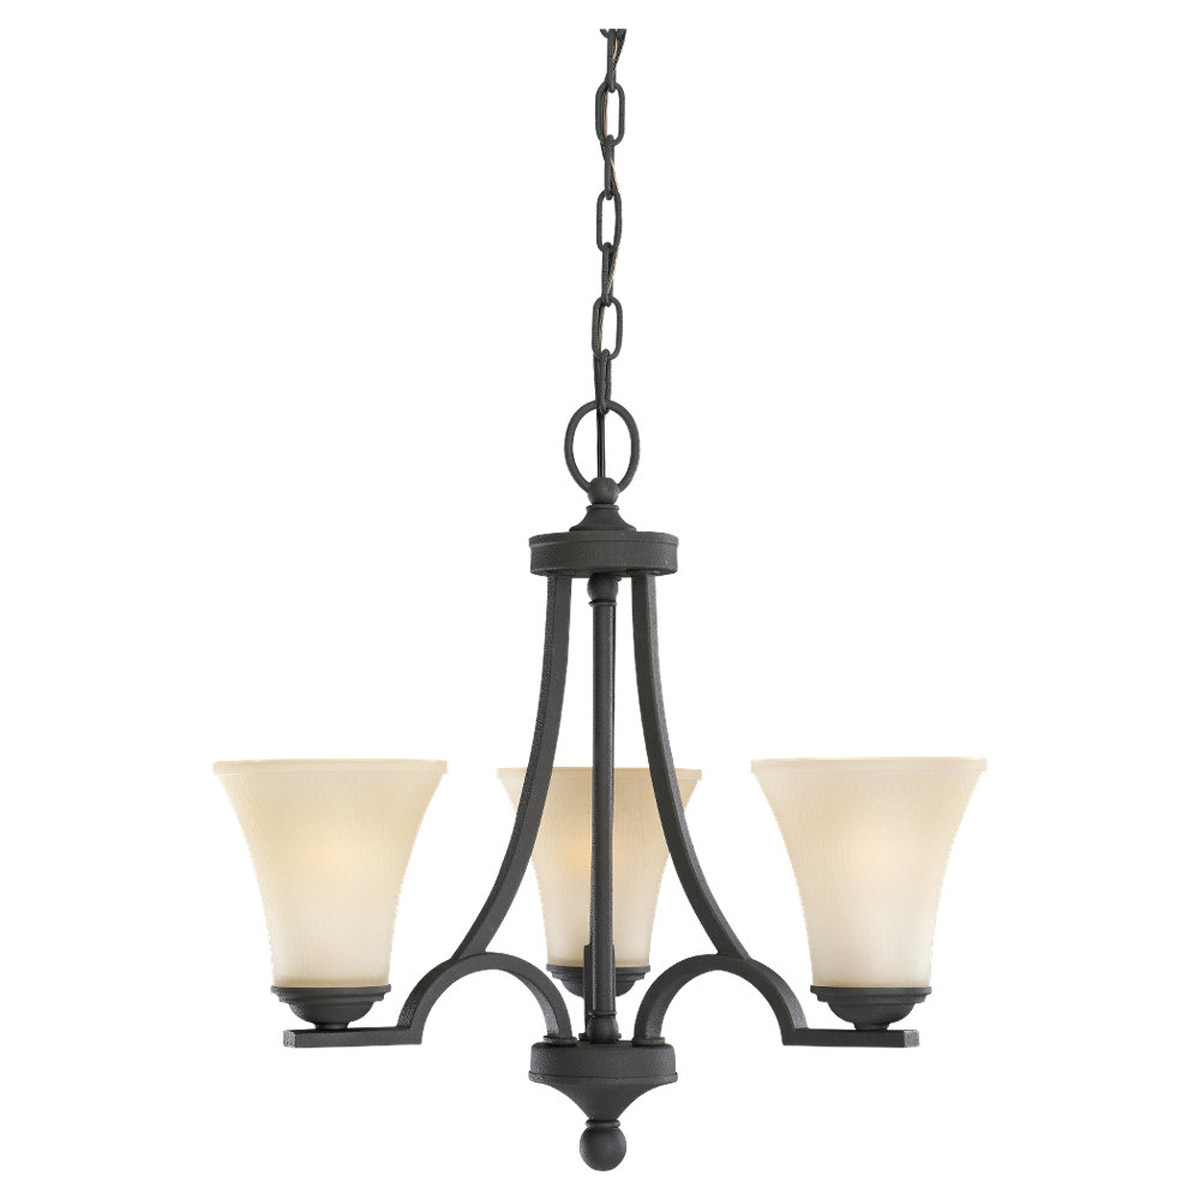 Sea Gull Lighting Somerton 3 Light Chandelier in Blacksmith 31375-839